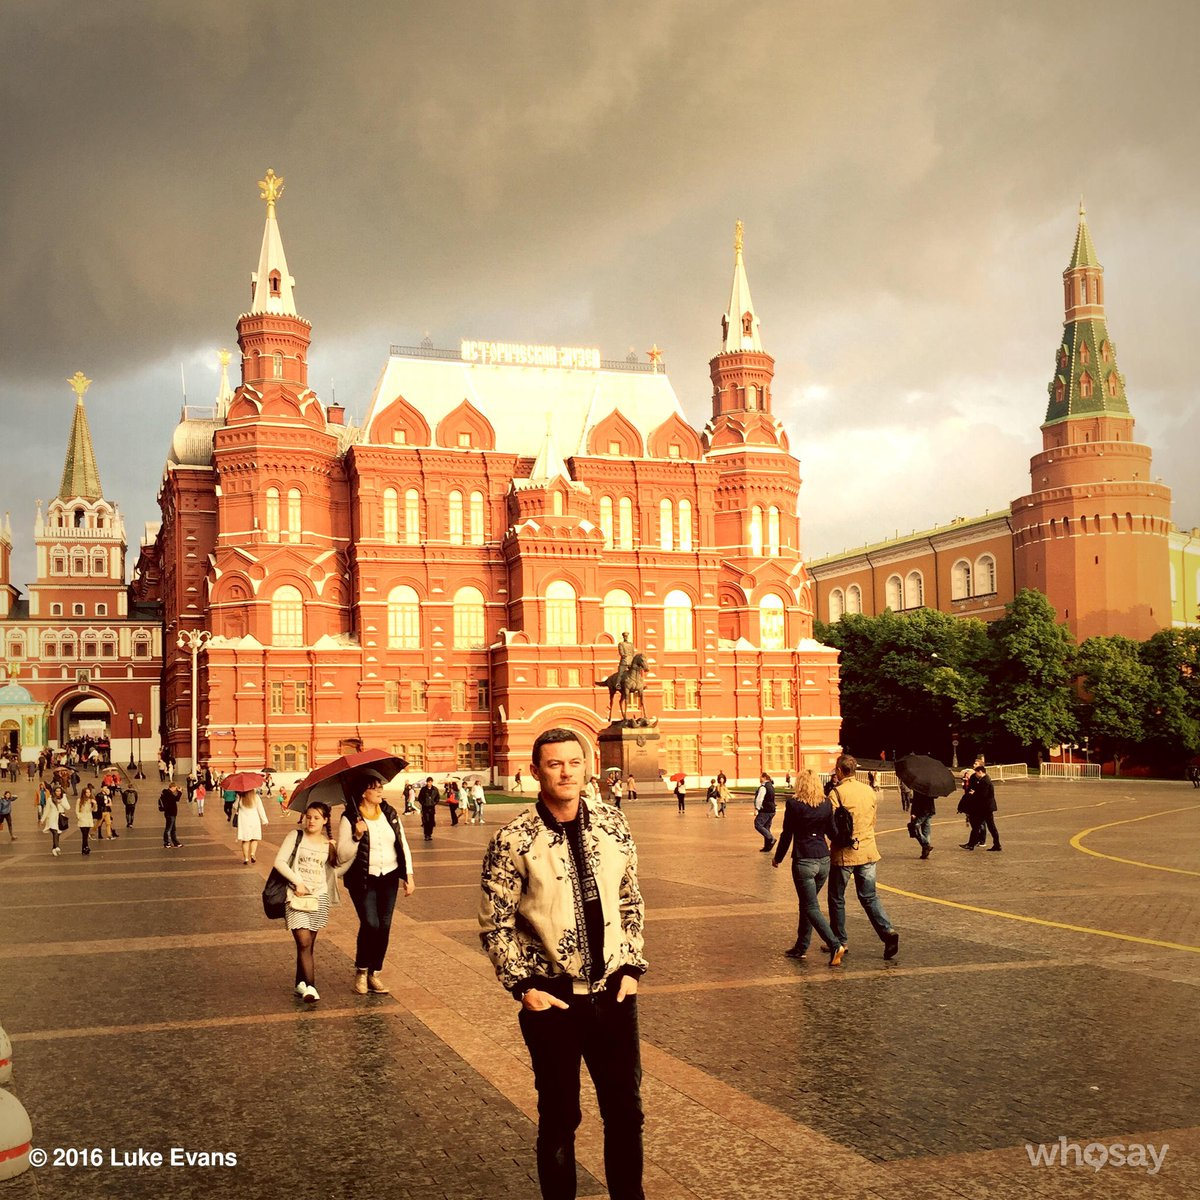 RT @TheRealLukevans: From Rome to Moscow. Hello Russia!!! #redsquare